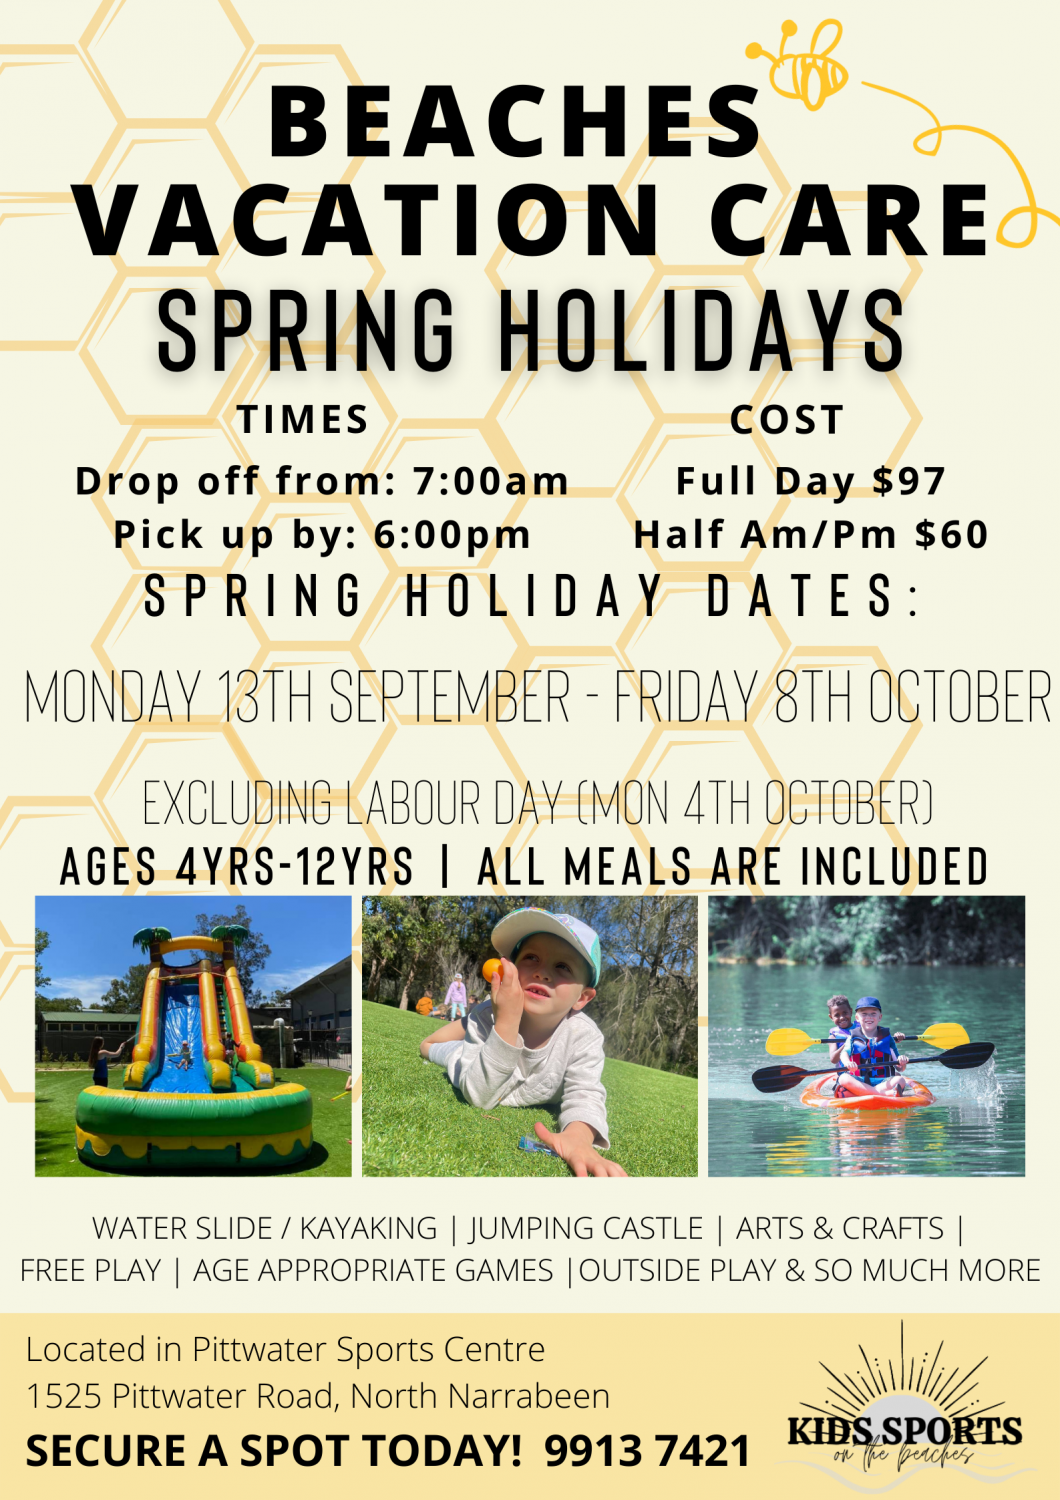 SPRING_HOLIDAY_DATES_Monday_20th_September-_Friday_1st_October_AGES_4yrs_-_12yrs